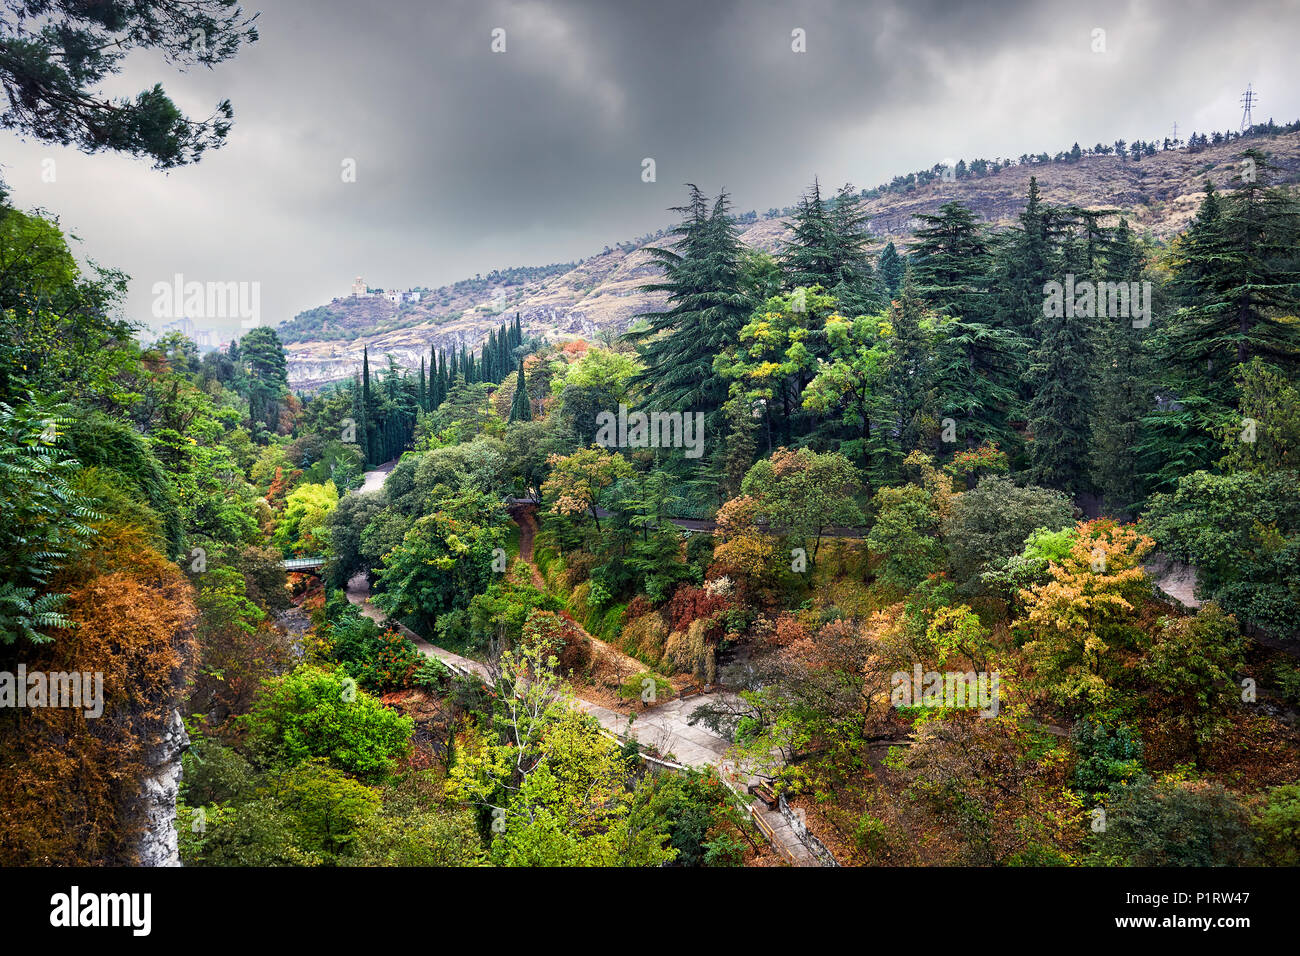 Aerial view of Botanical Garden with autumn trees at overcast cloudy sky in Tbilisi, Georgia - Stock Image